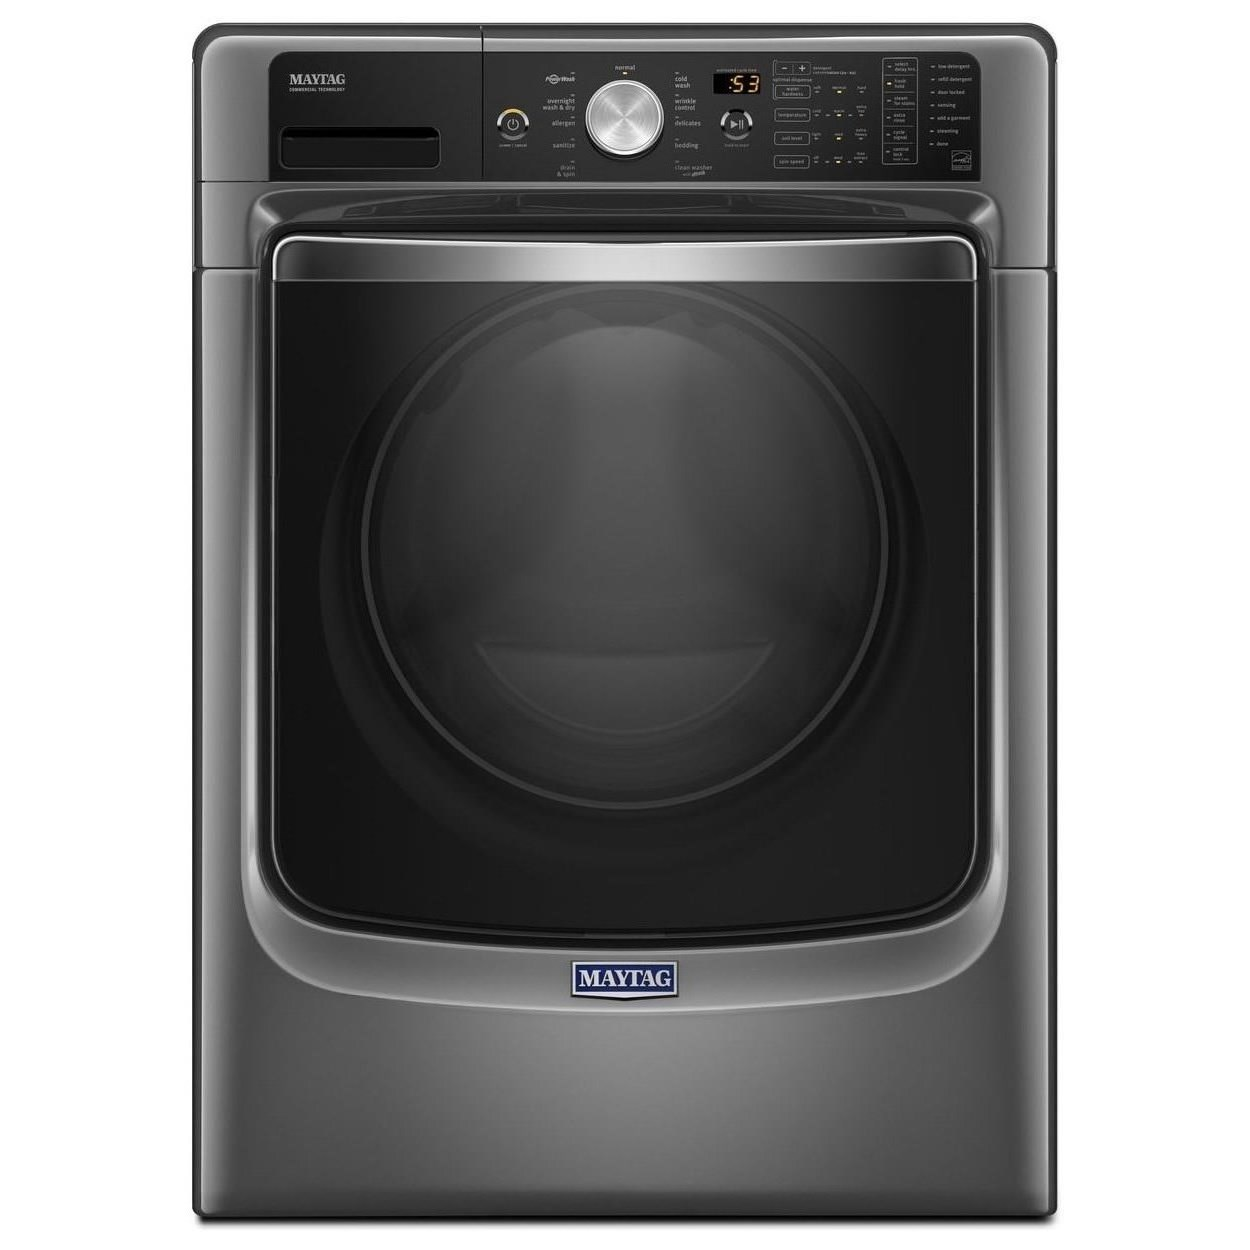 Maytag Front Load Washers 8200 Series 4.5 Cu. Ft. Front Load Washer - Item Number: MHW8200FC